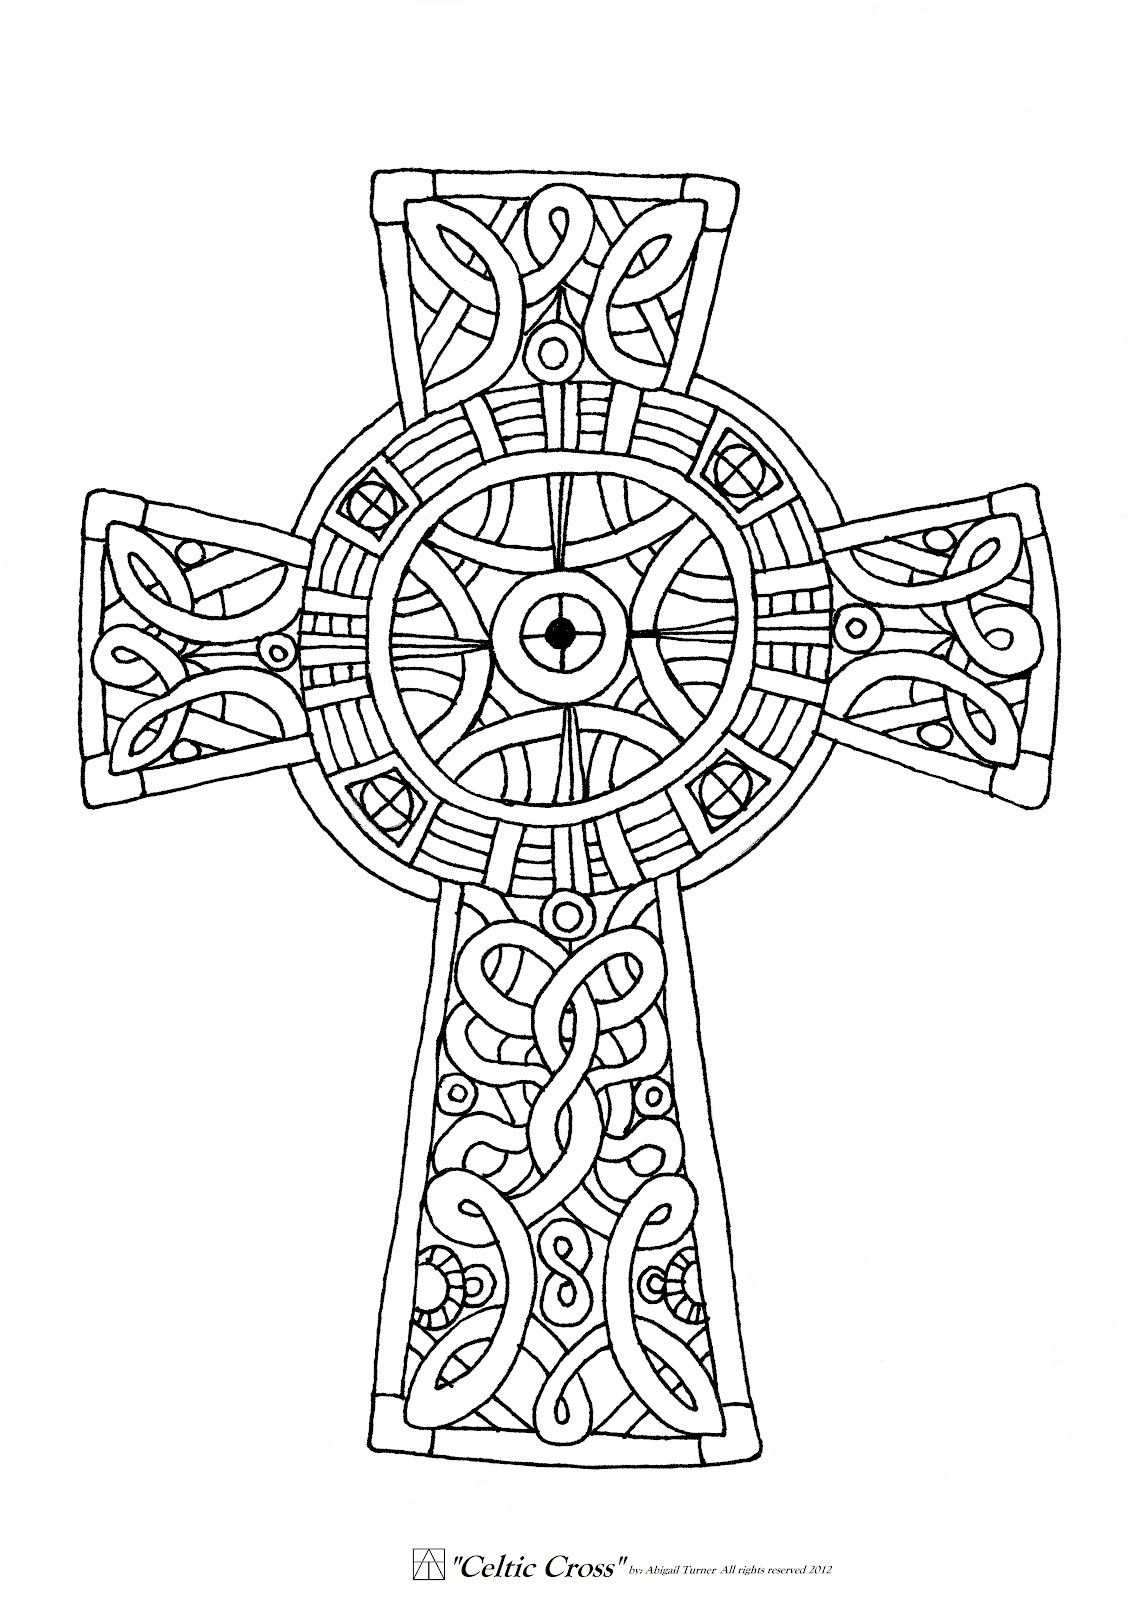 Free Printable Celtic Cross Coloring Pages Coloring Pages Free Romeo And Juliet Coloring Pages